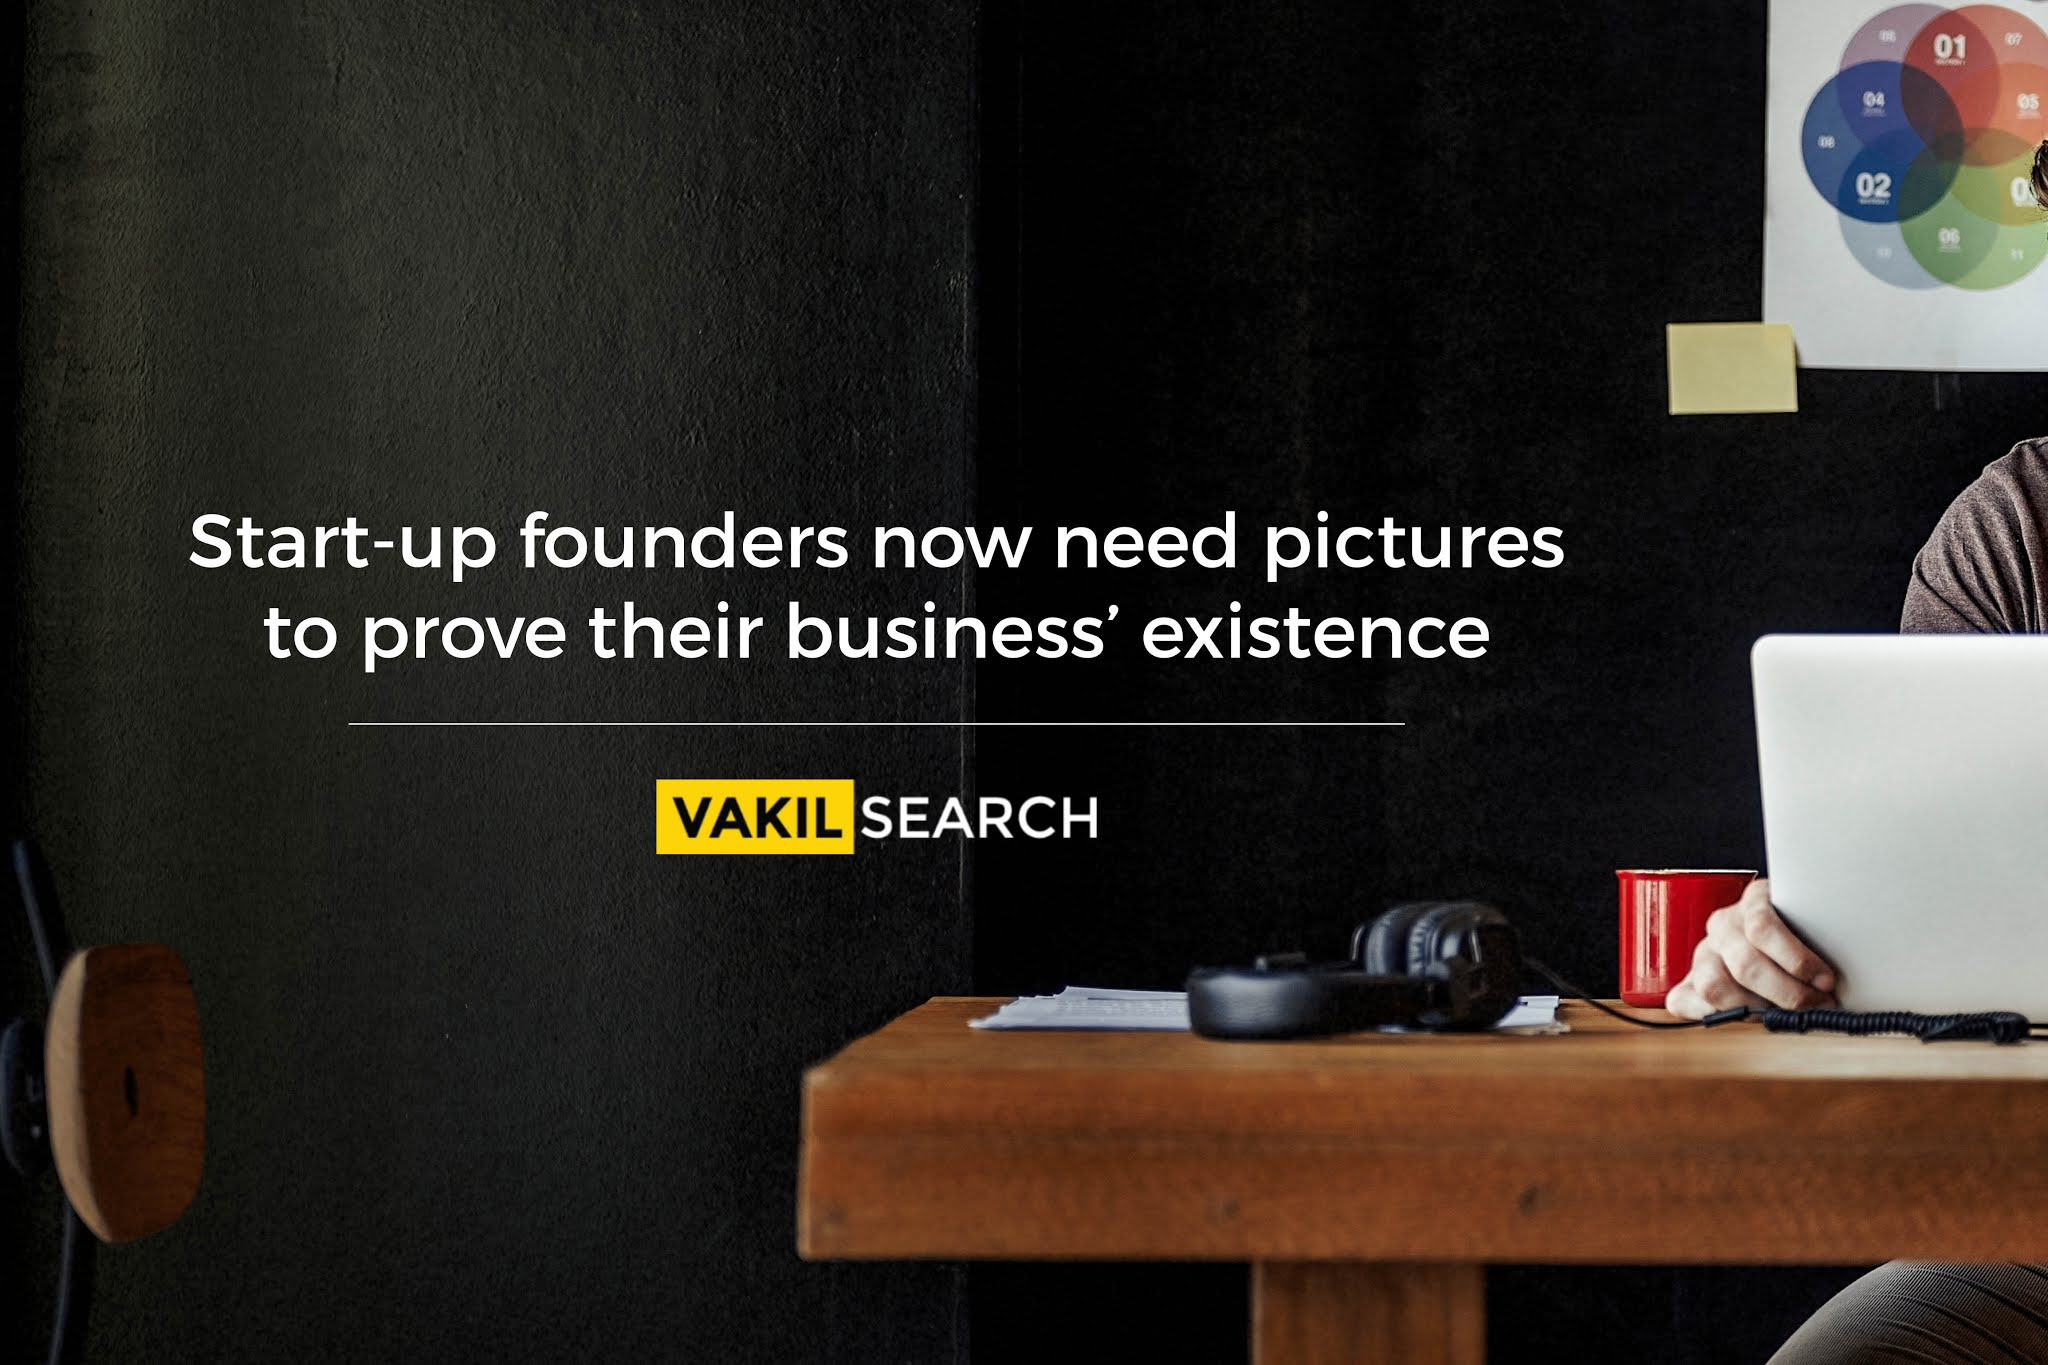 Start-up founders now need pictures to prove their business' existence